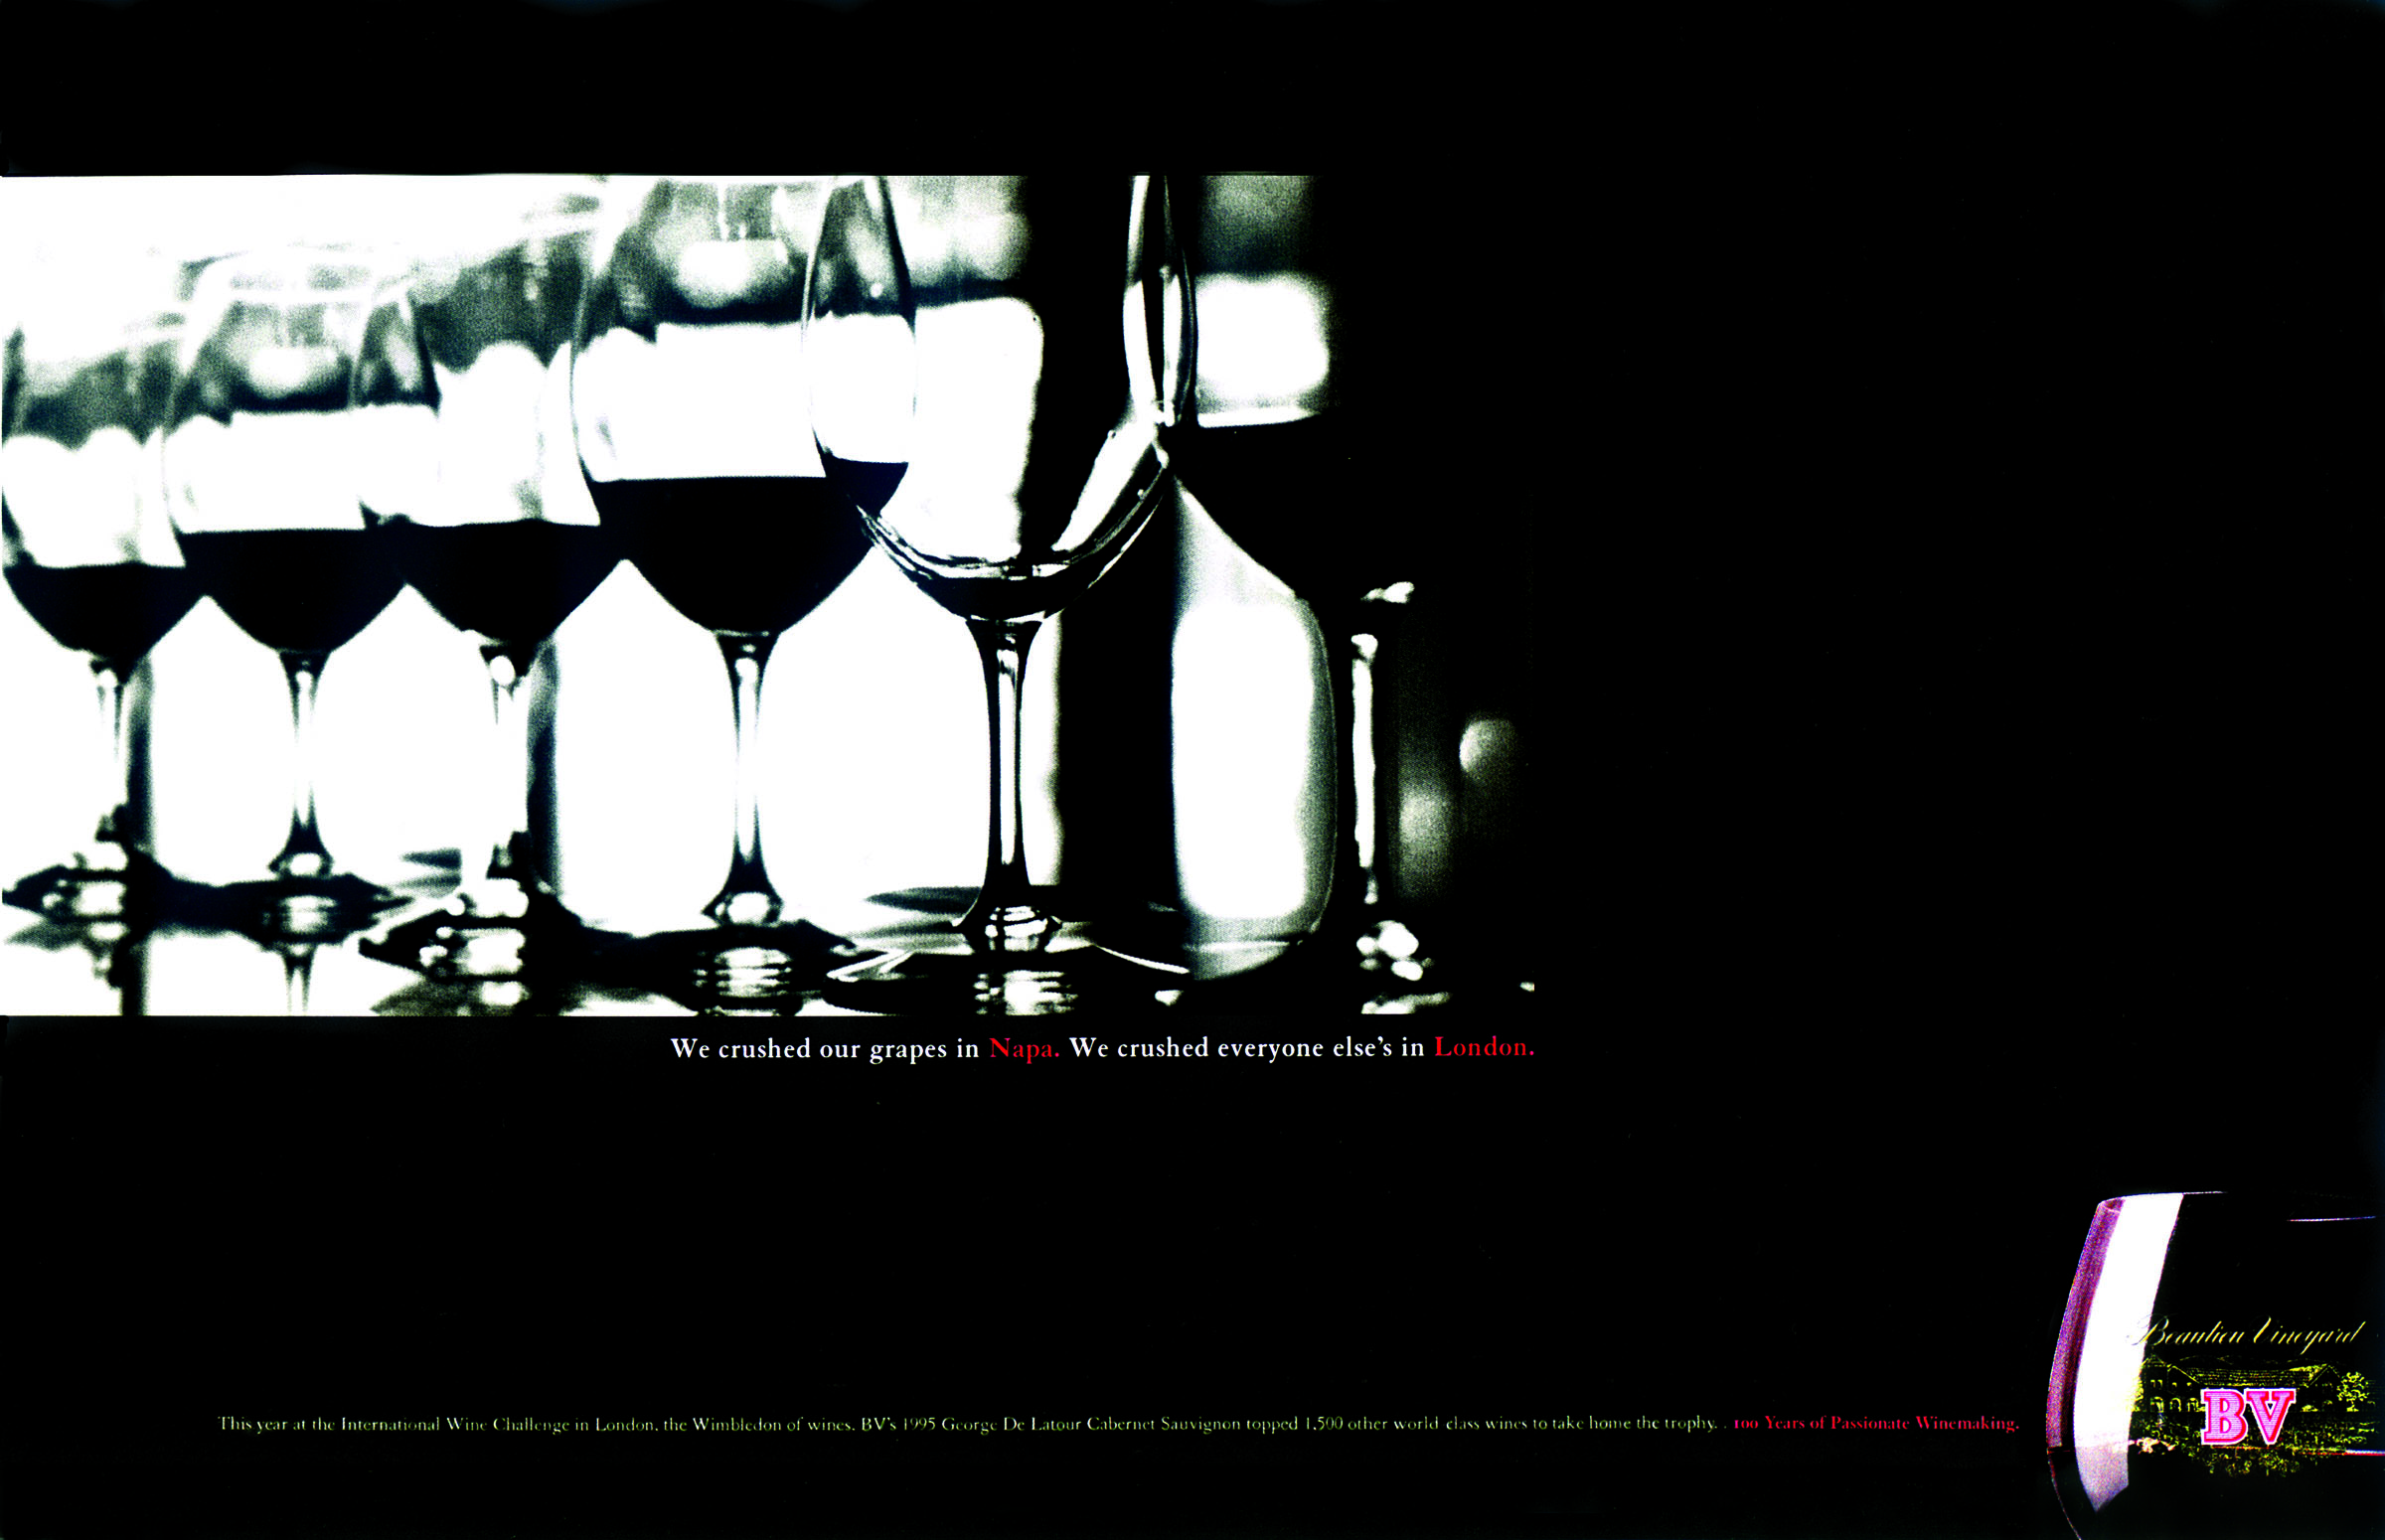 ad for bv wins to announce their recent win at the International wine challenge in london.